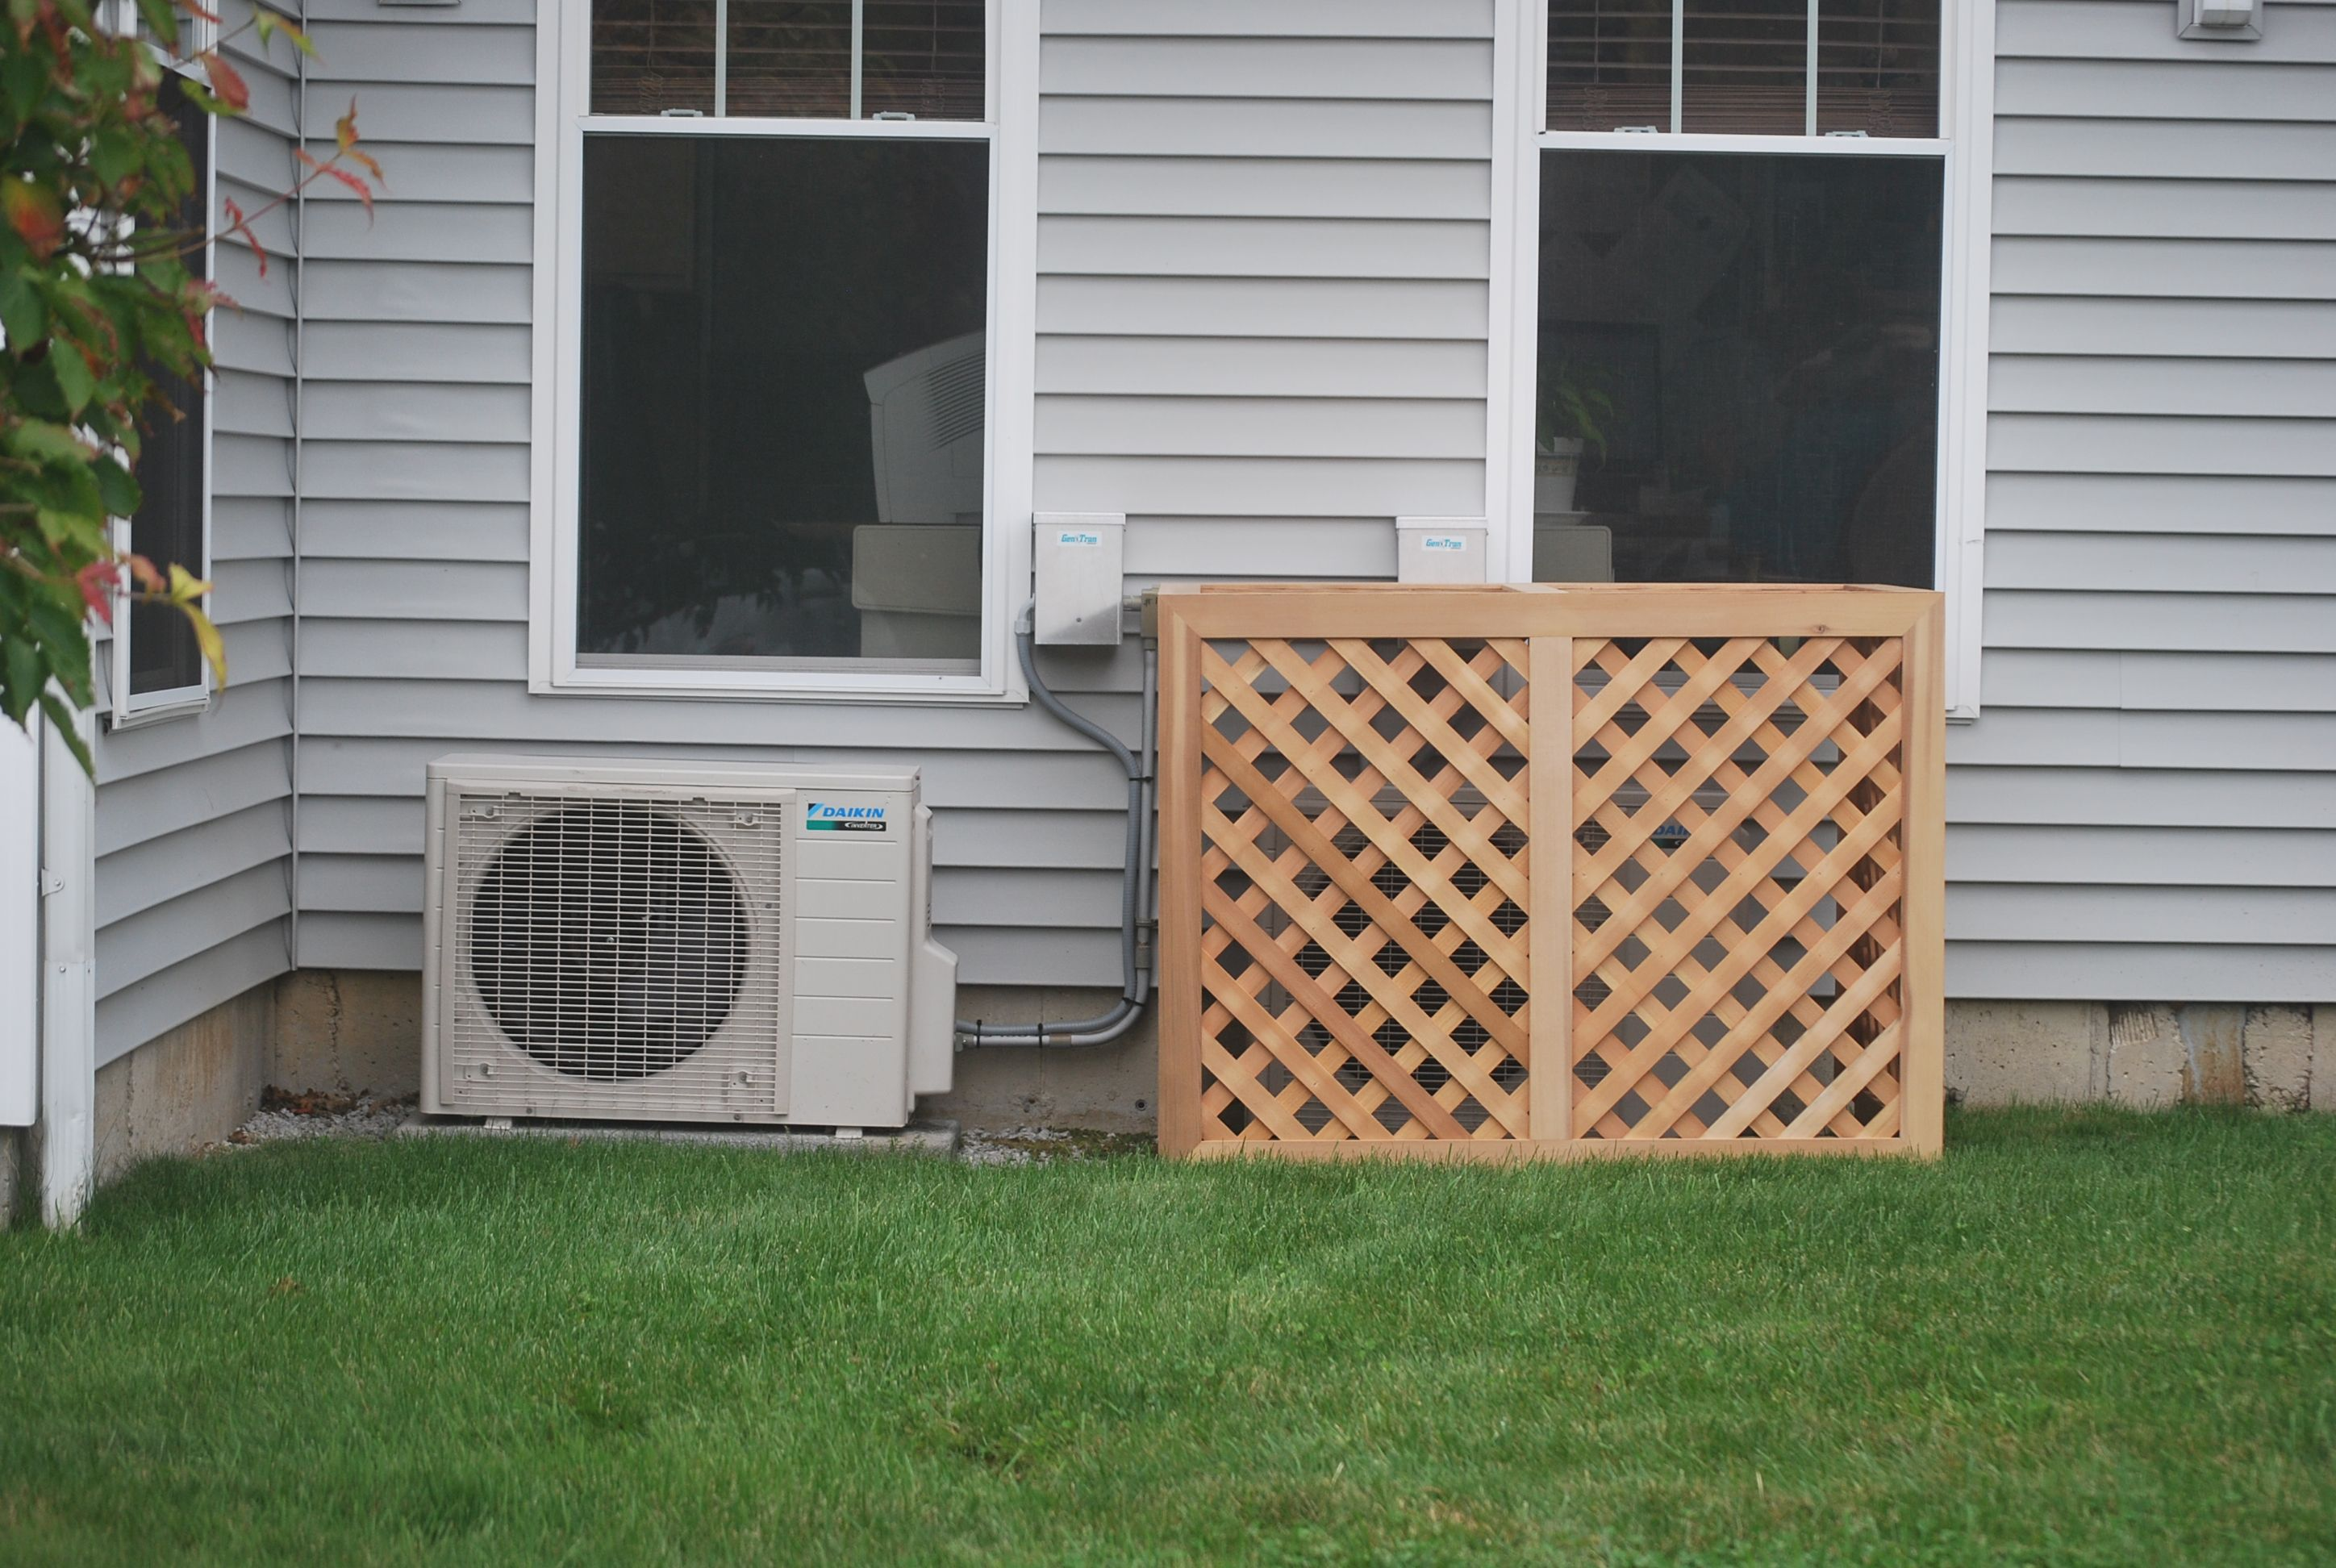 This is one of our Air Conditioner/Generator Enclosures